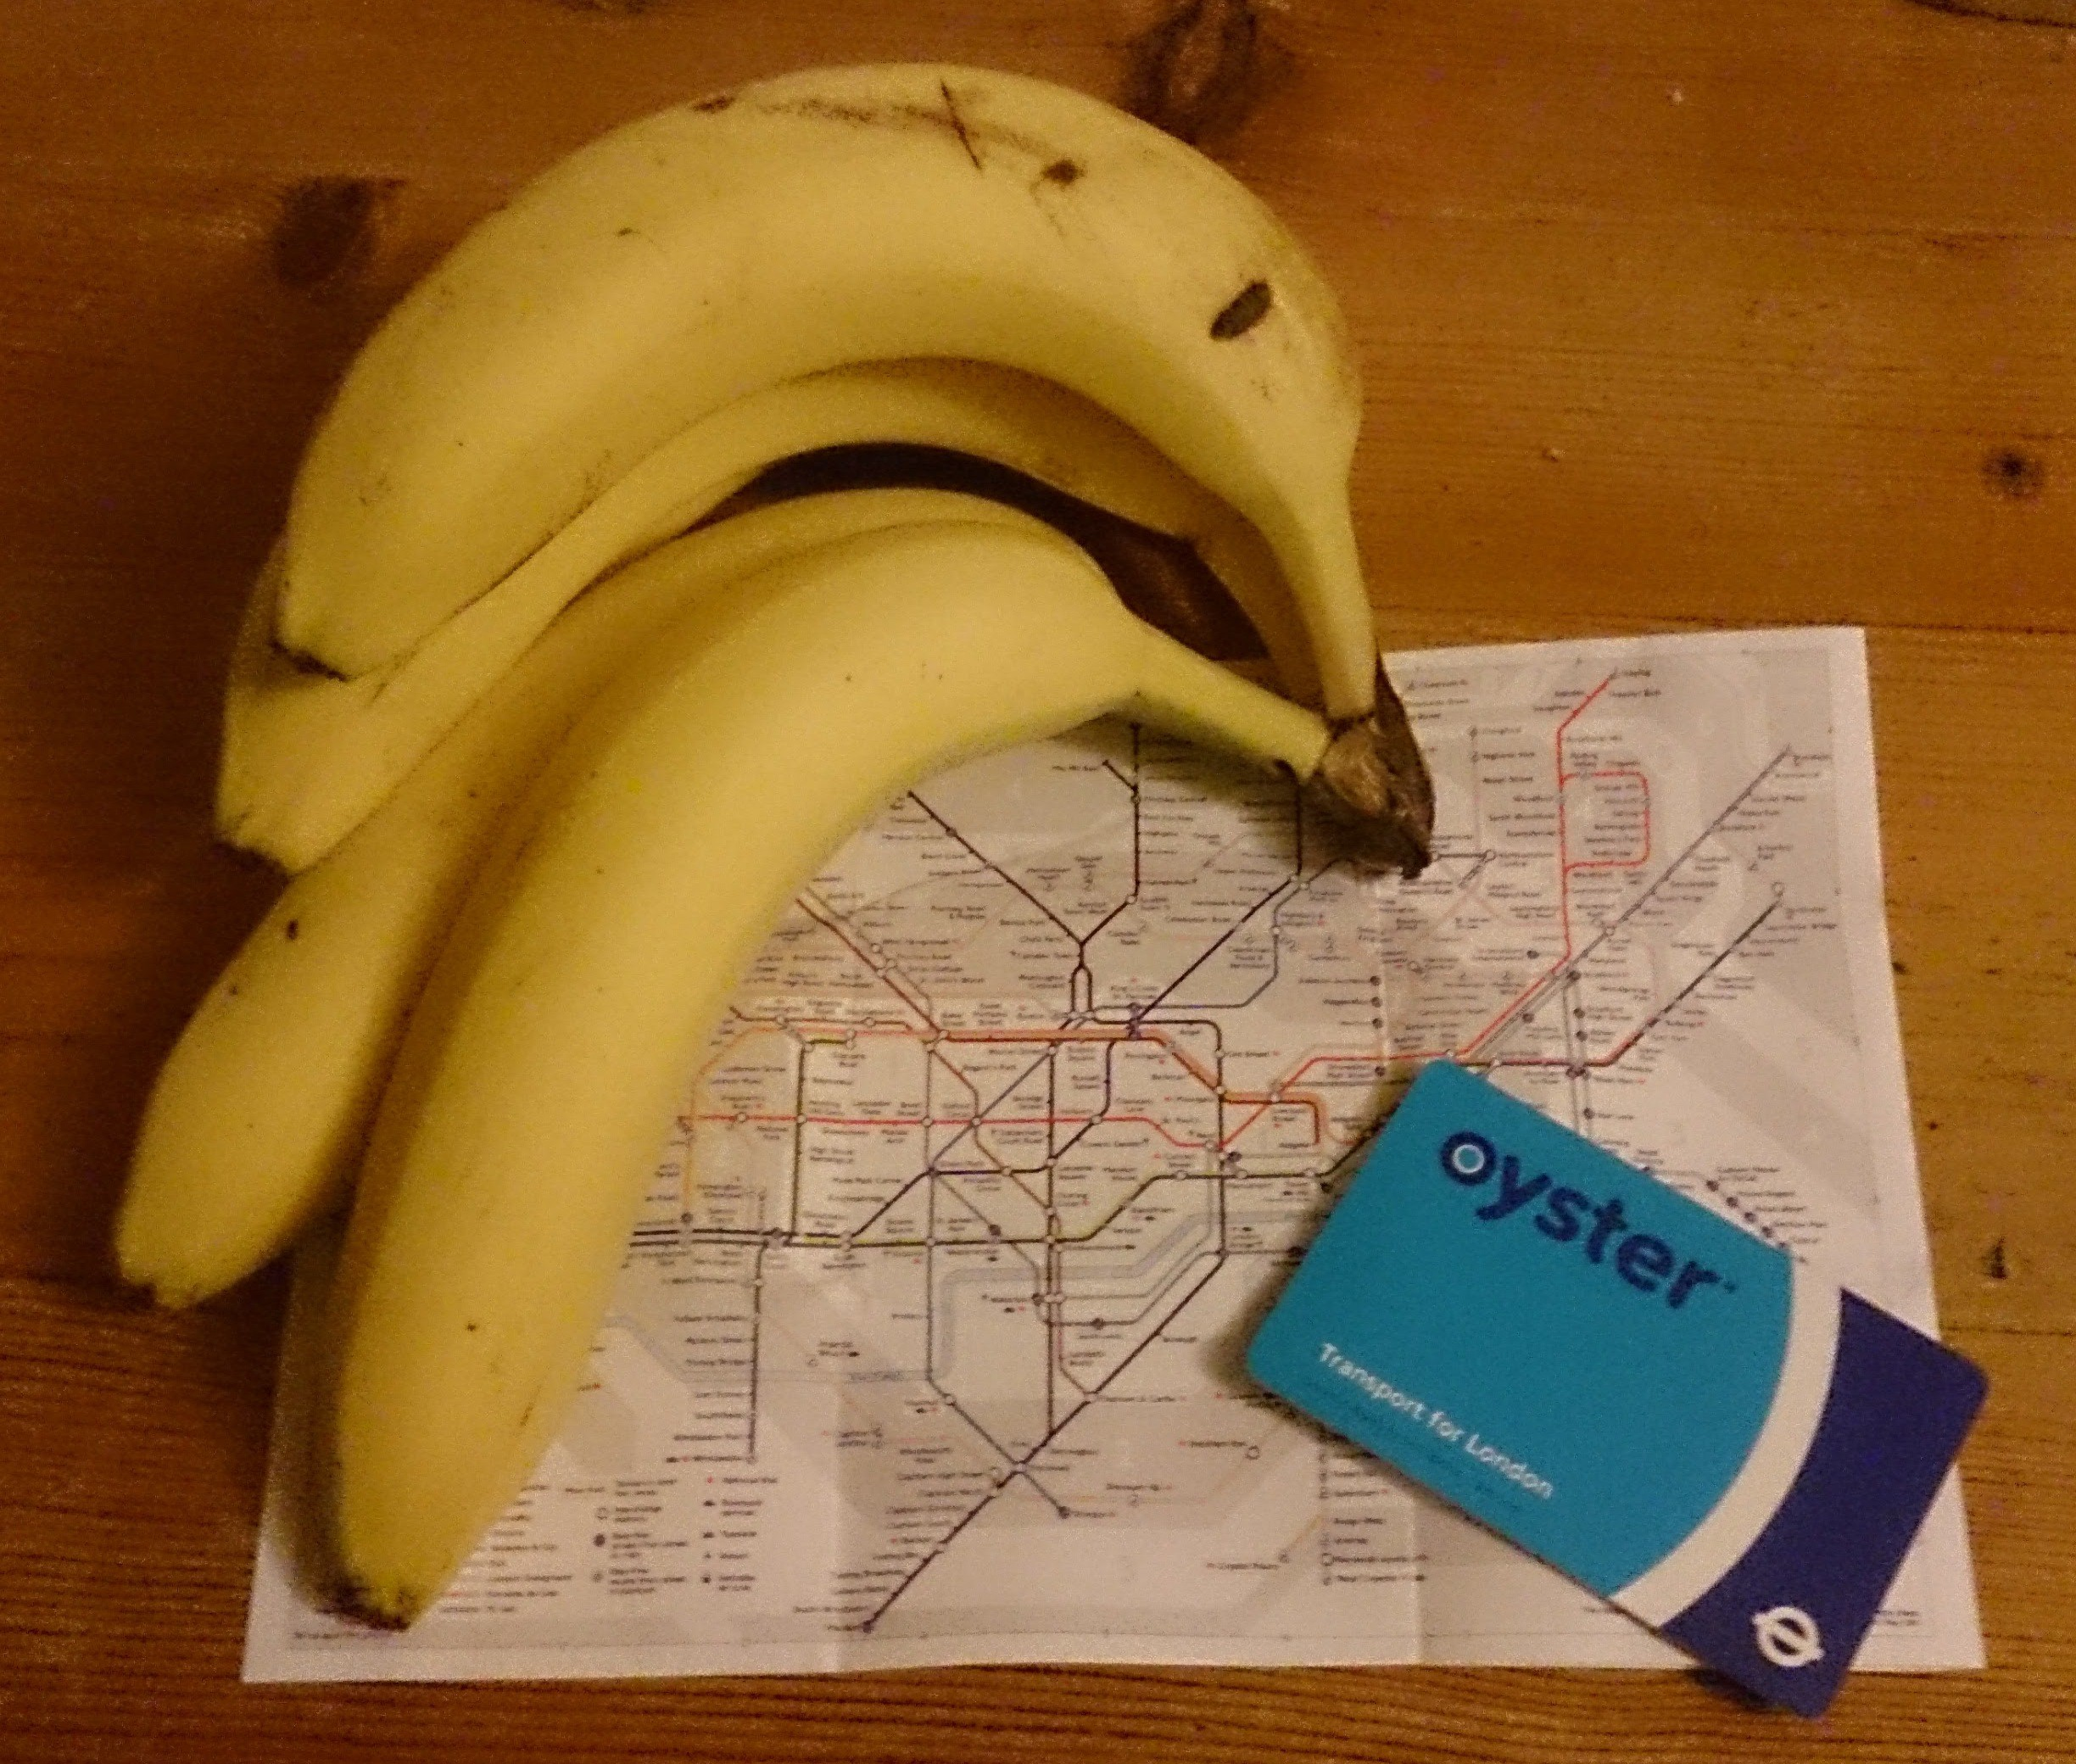 Tube map, Oyster card and bunch of bananas